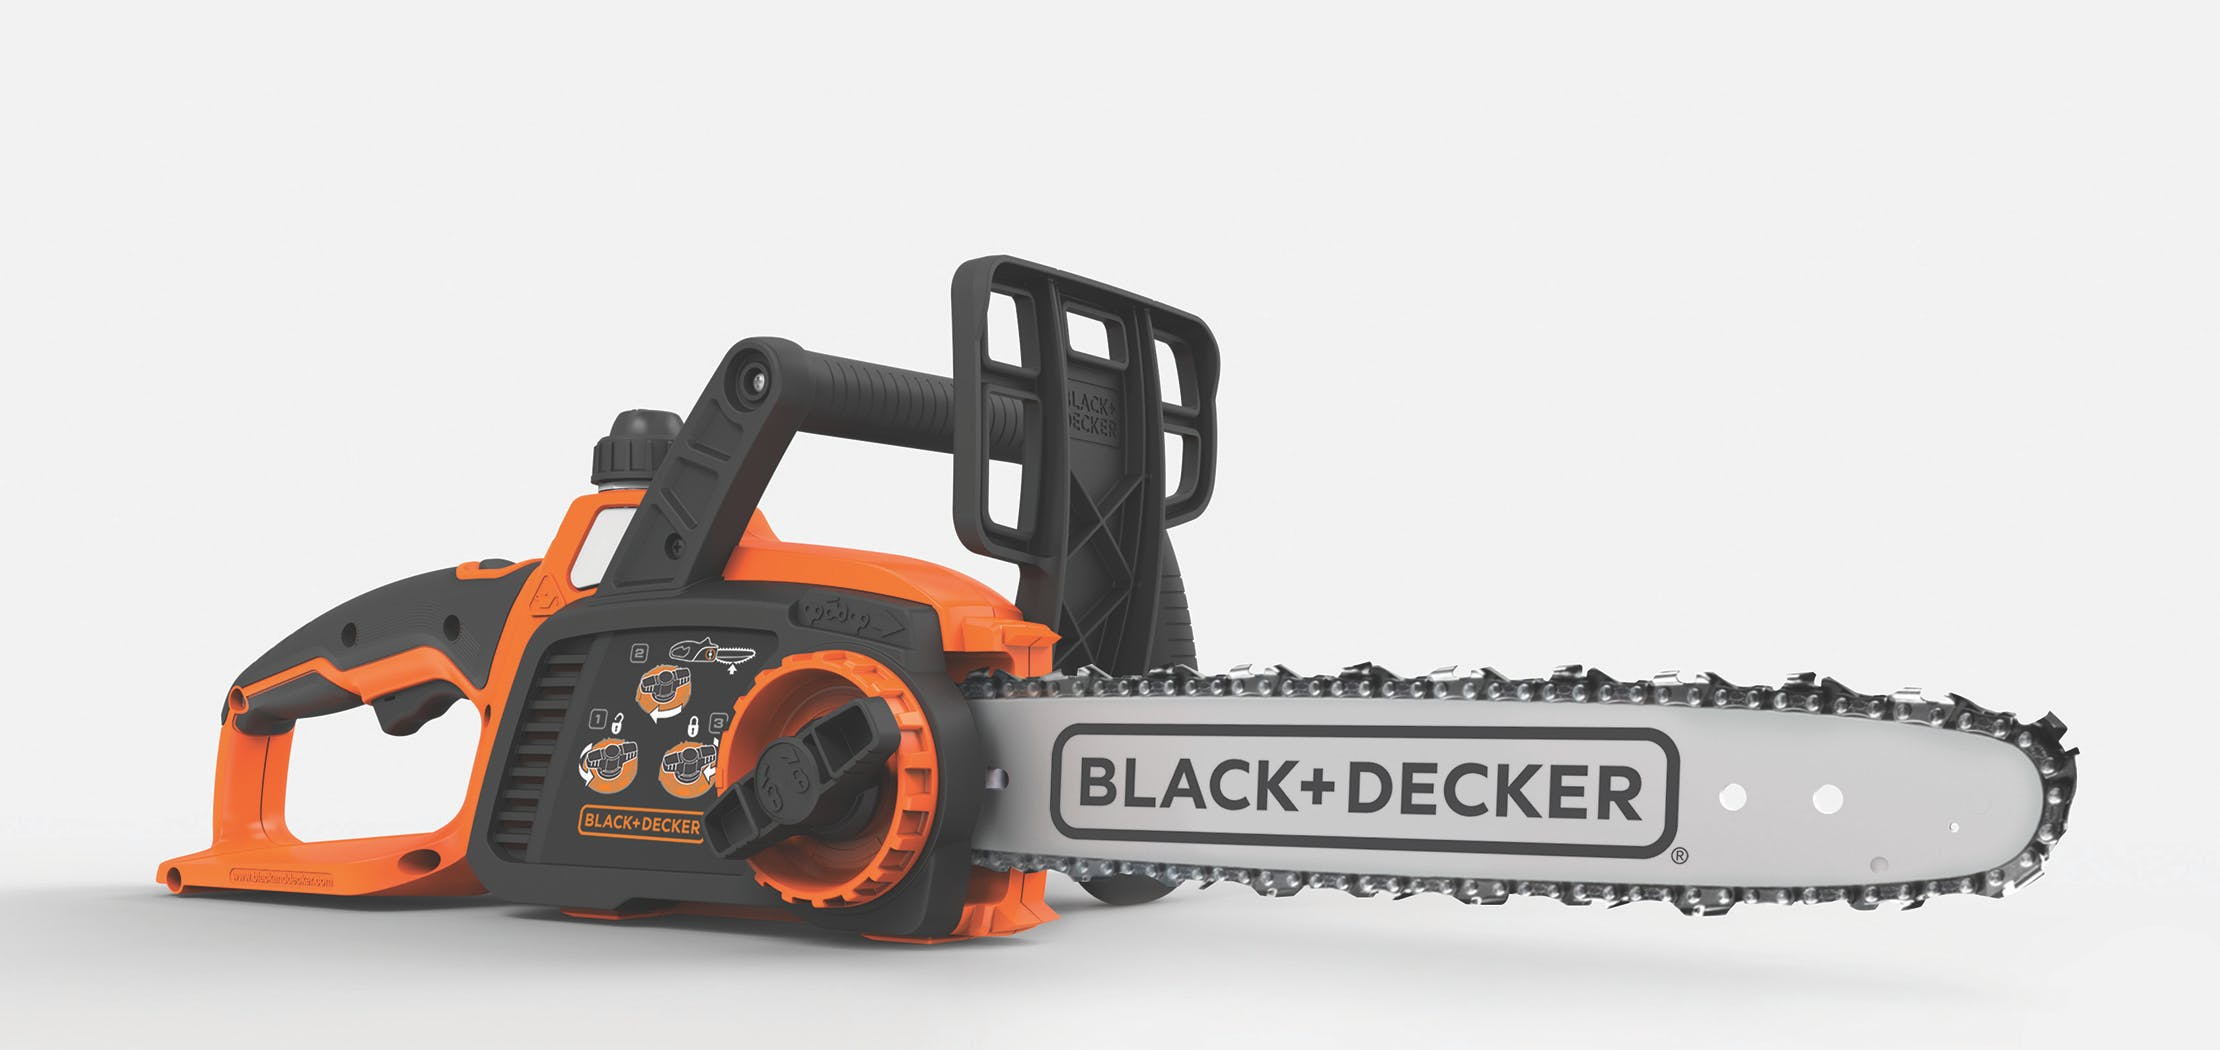 black decker case study Bill mihaliak, a third-generation construction worker, is exactly the type of  customer that black & decker is after with its new dewalt line of tools.